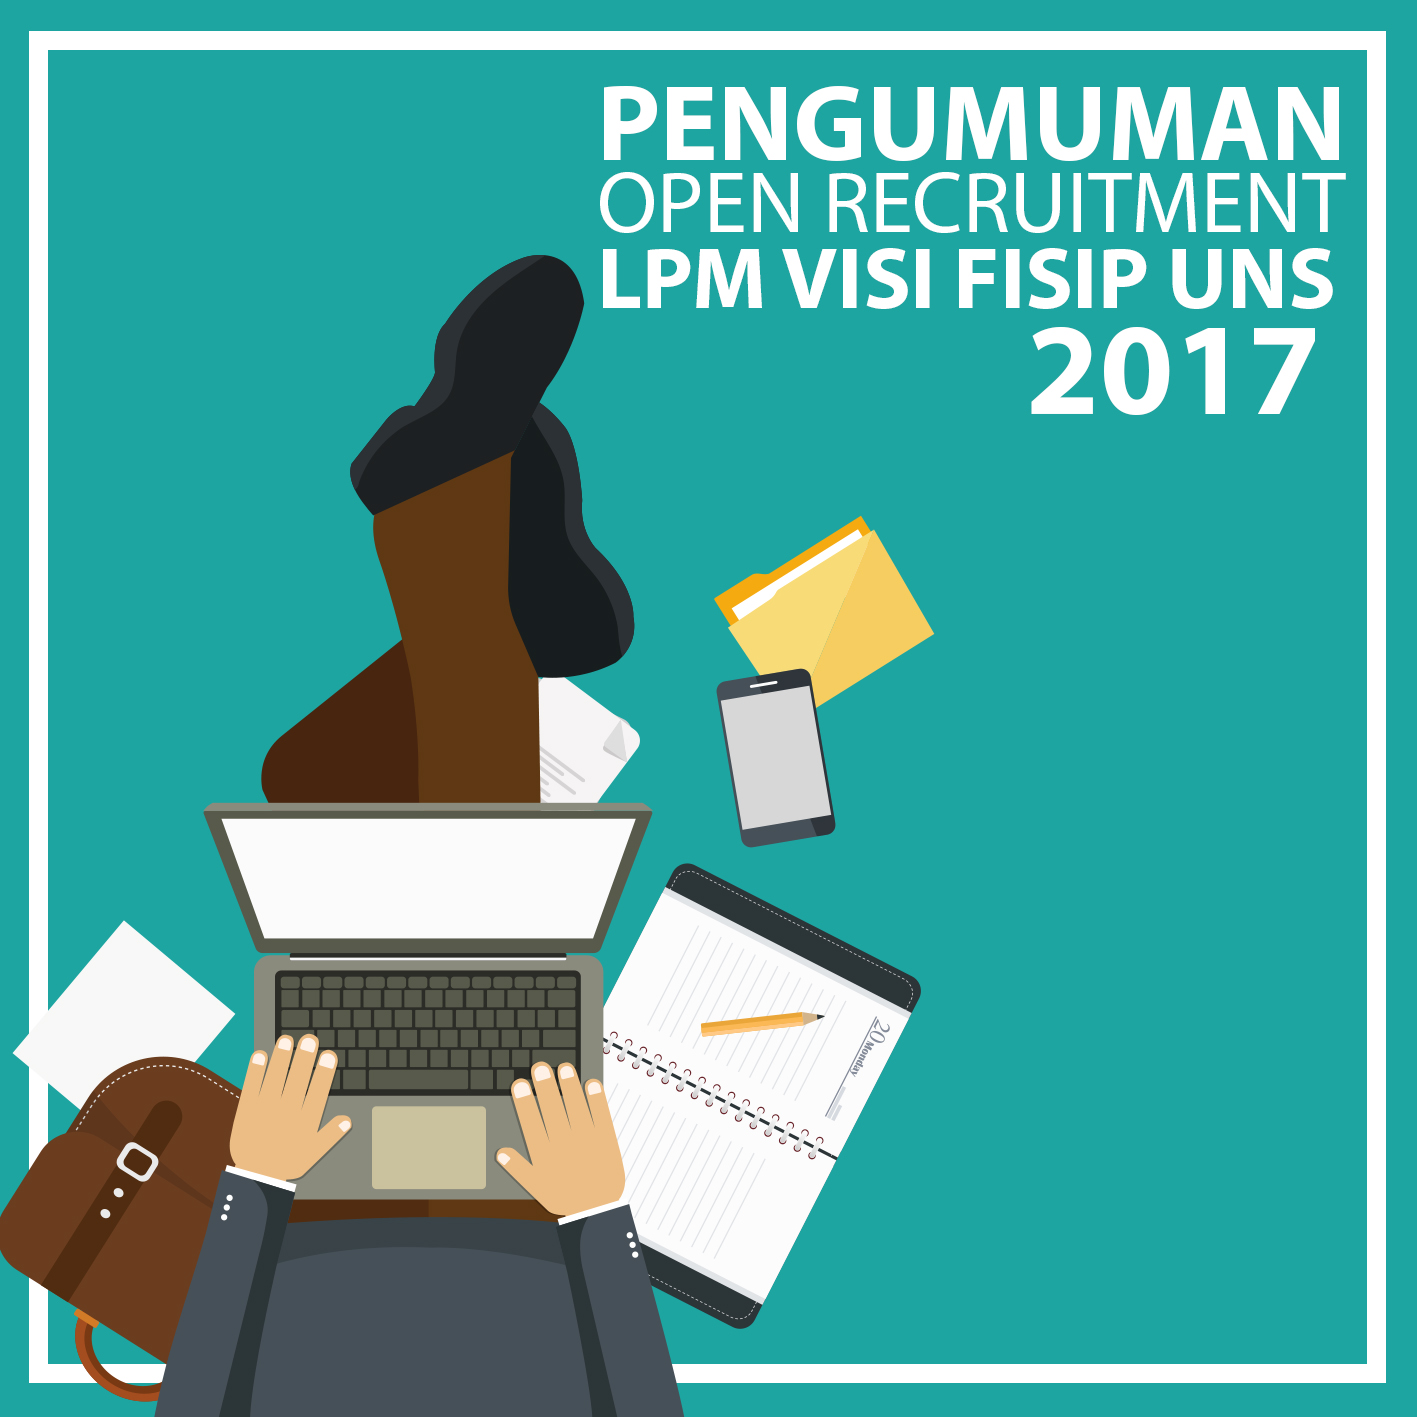 Pengumuman Open Recruitment